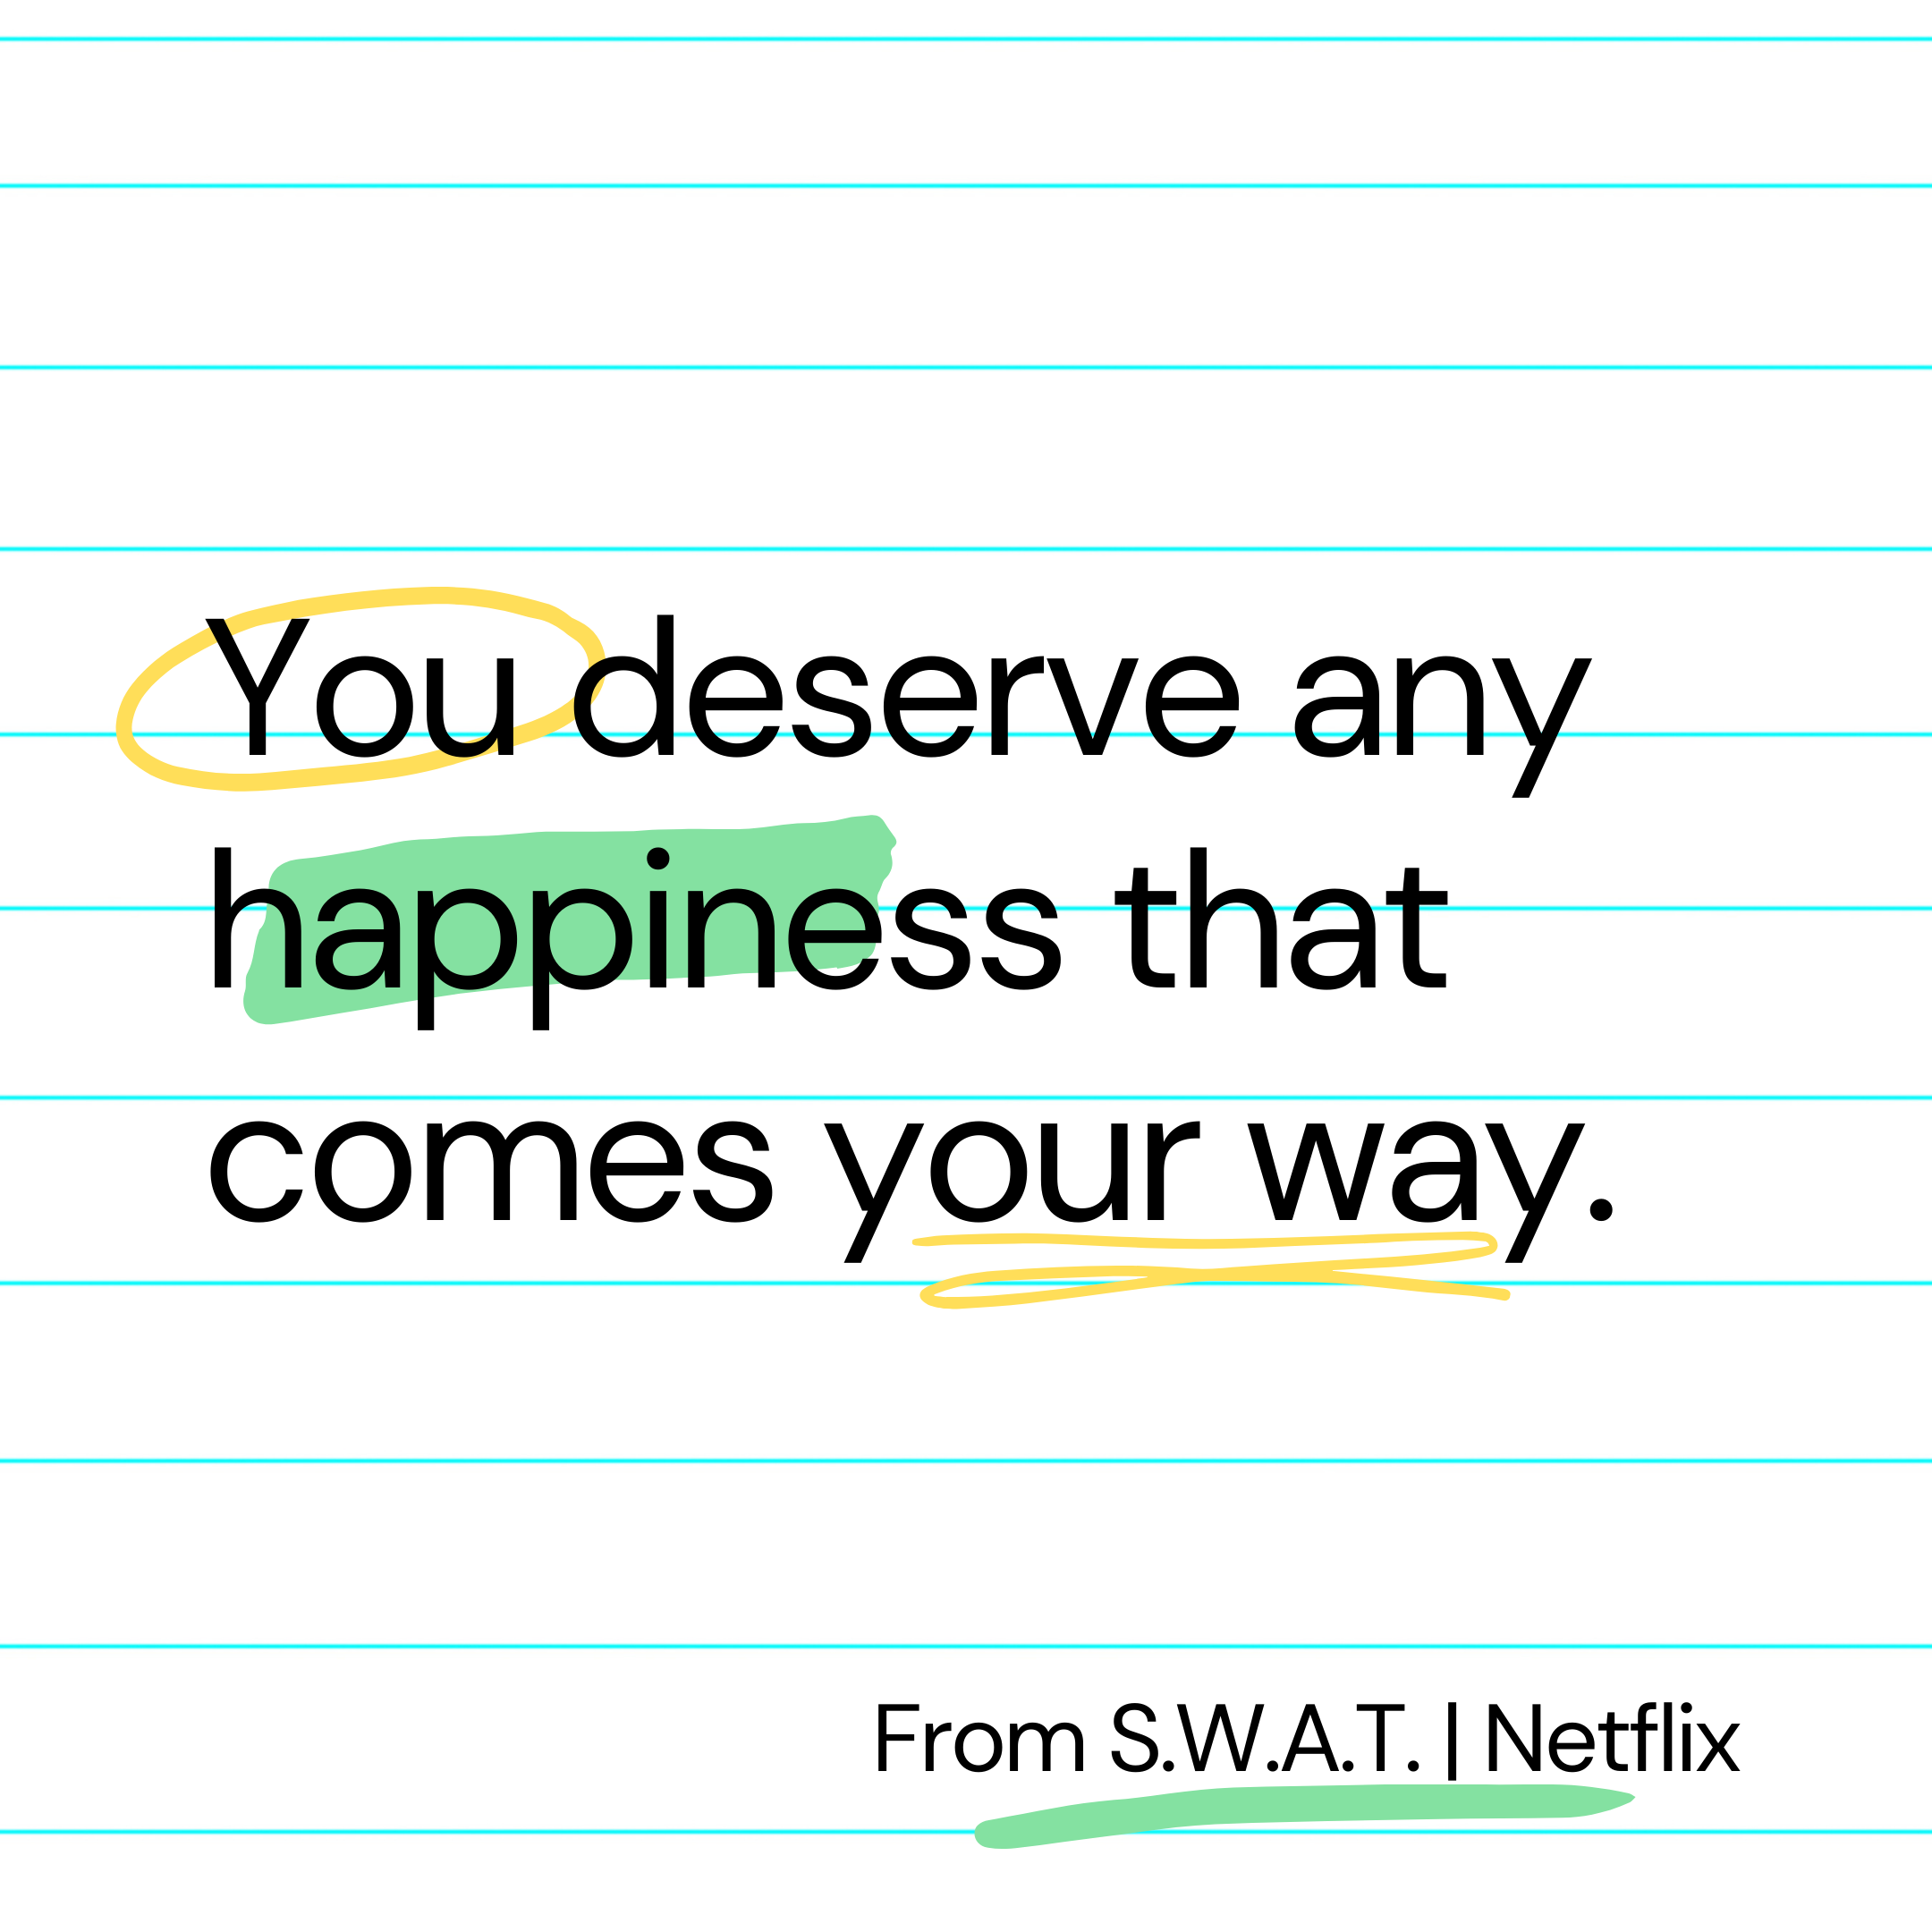 You deserve any happiness that comes your way | Hondo from S.W.A.T. at Netflix [2160×2160]